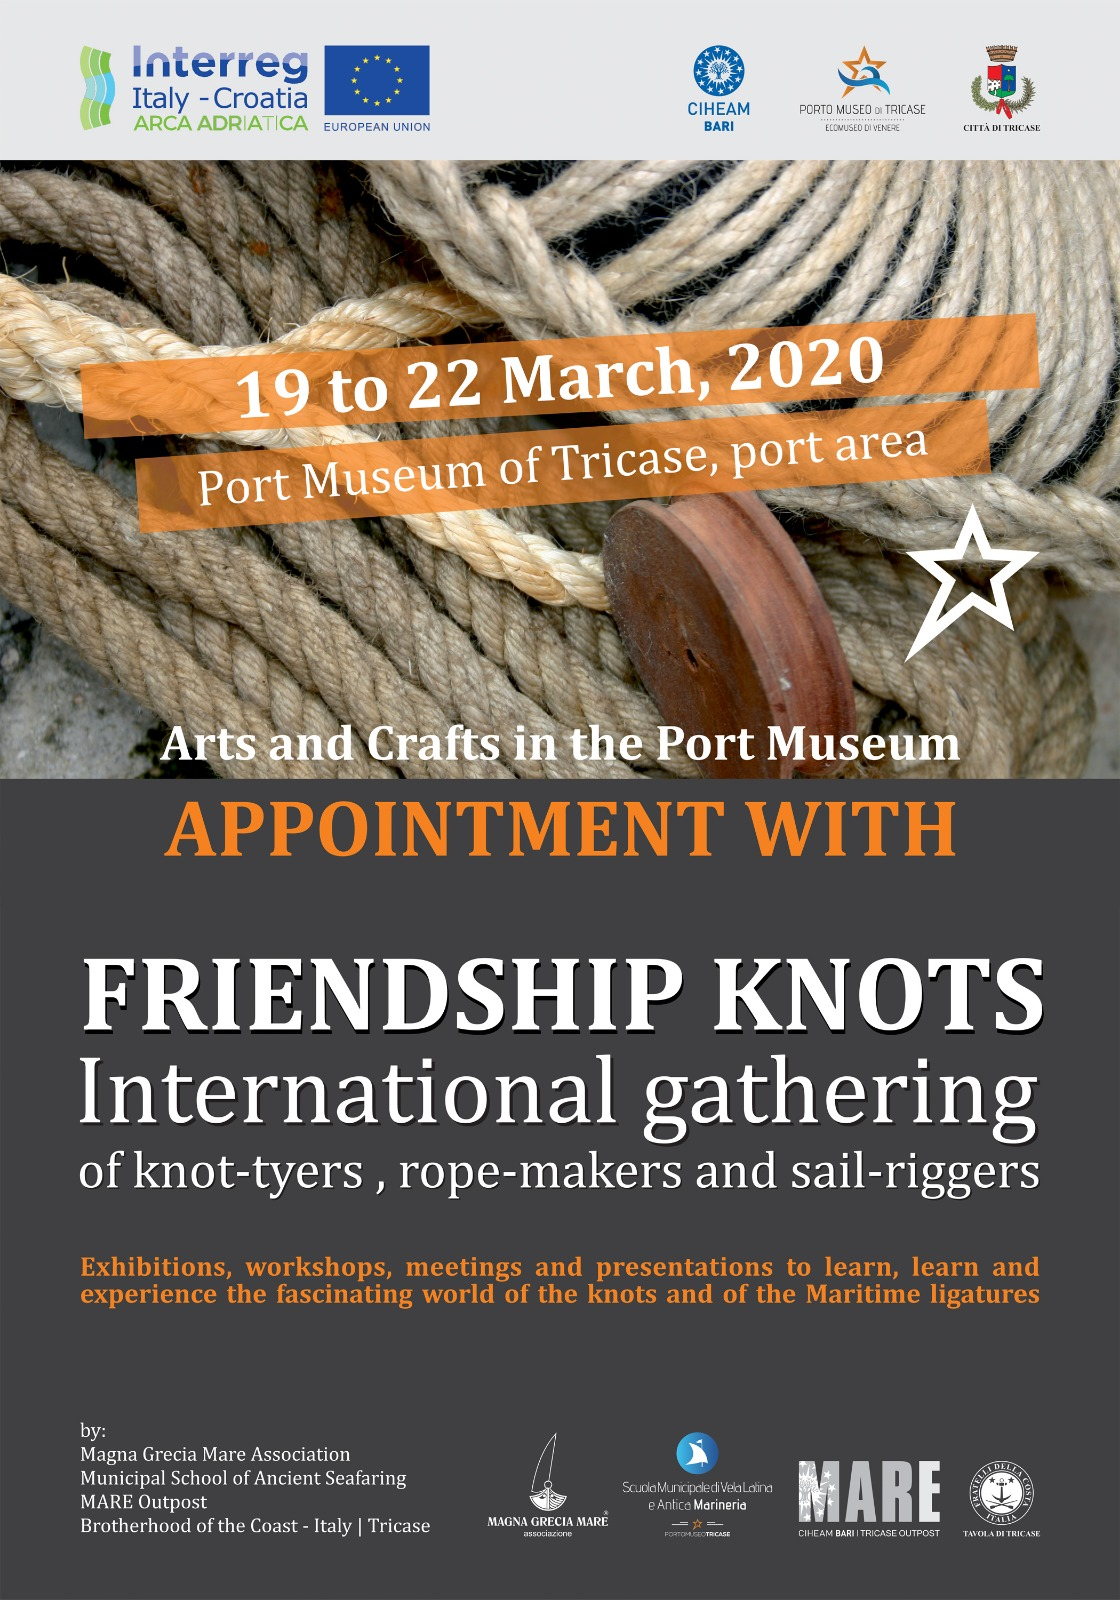 ENG FRIENDSHIP KNOTS 19 22 marzo 2020